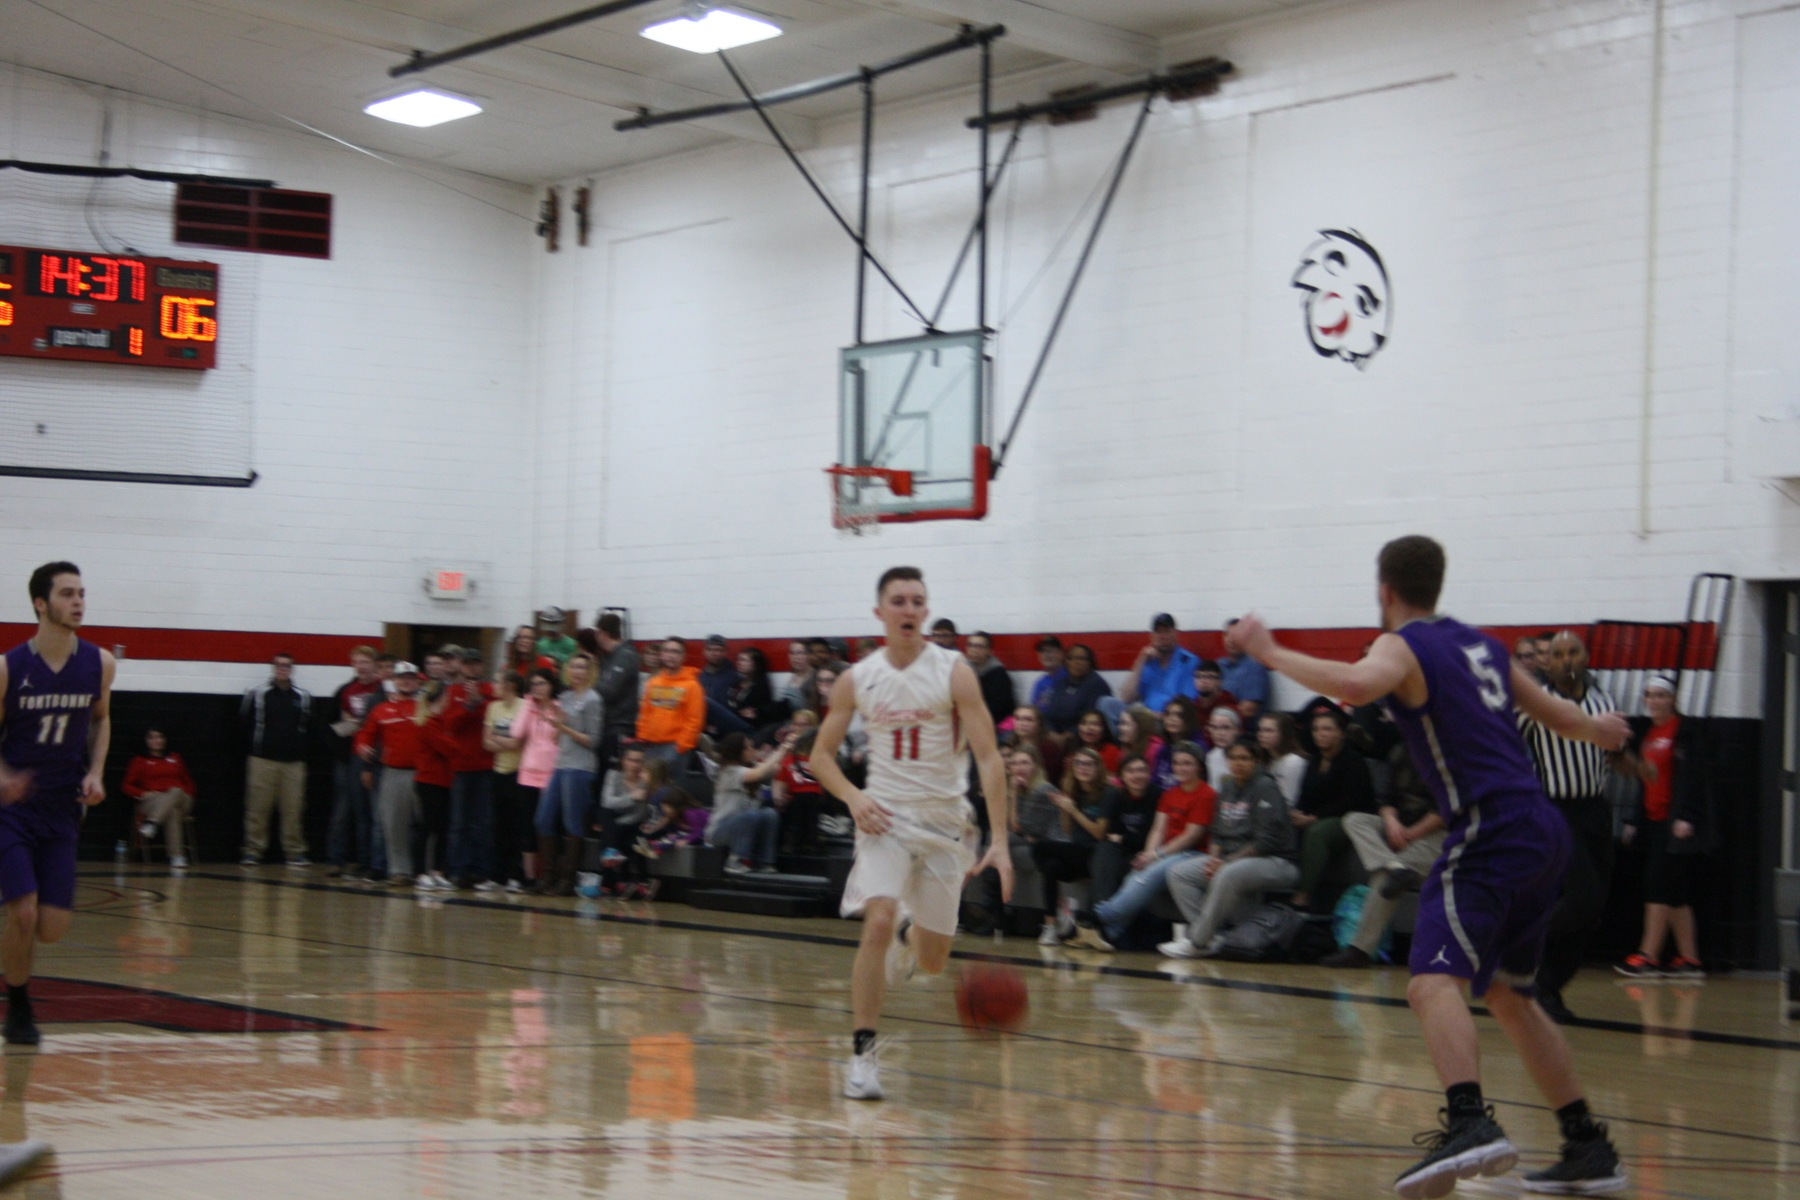 Reed Rusten brings the ball up the floor for the Beavers.